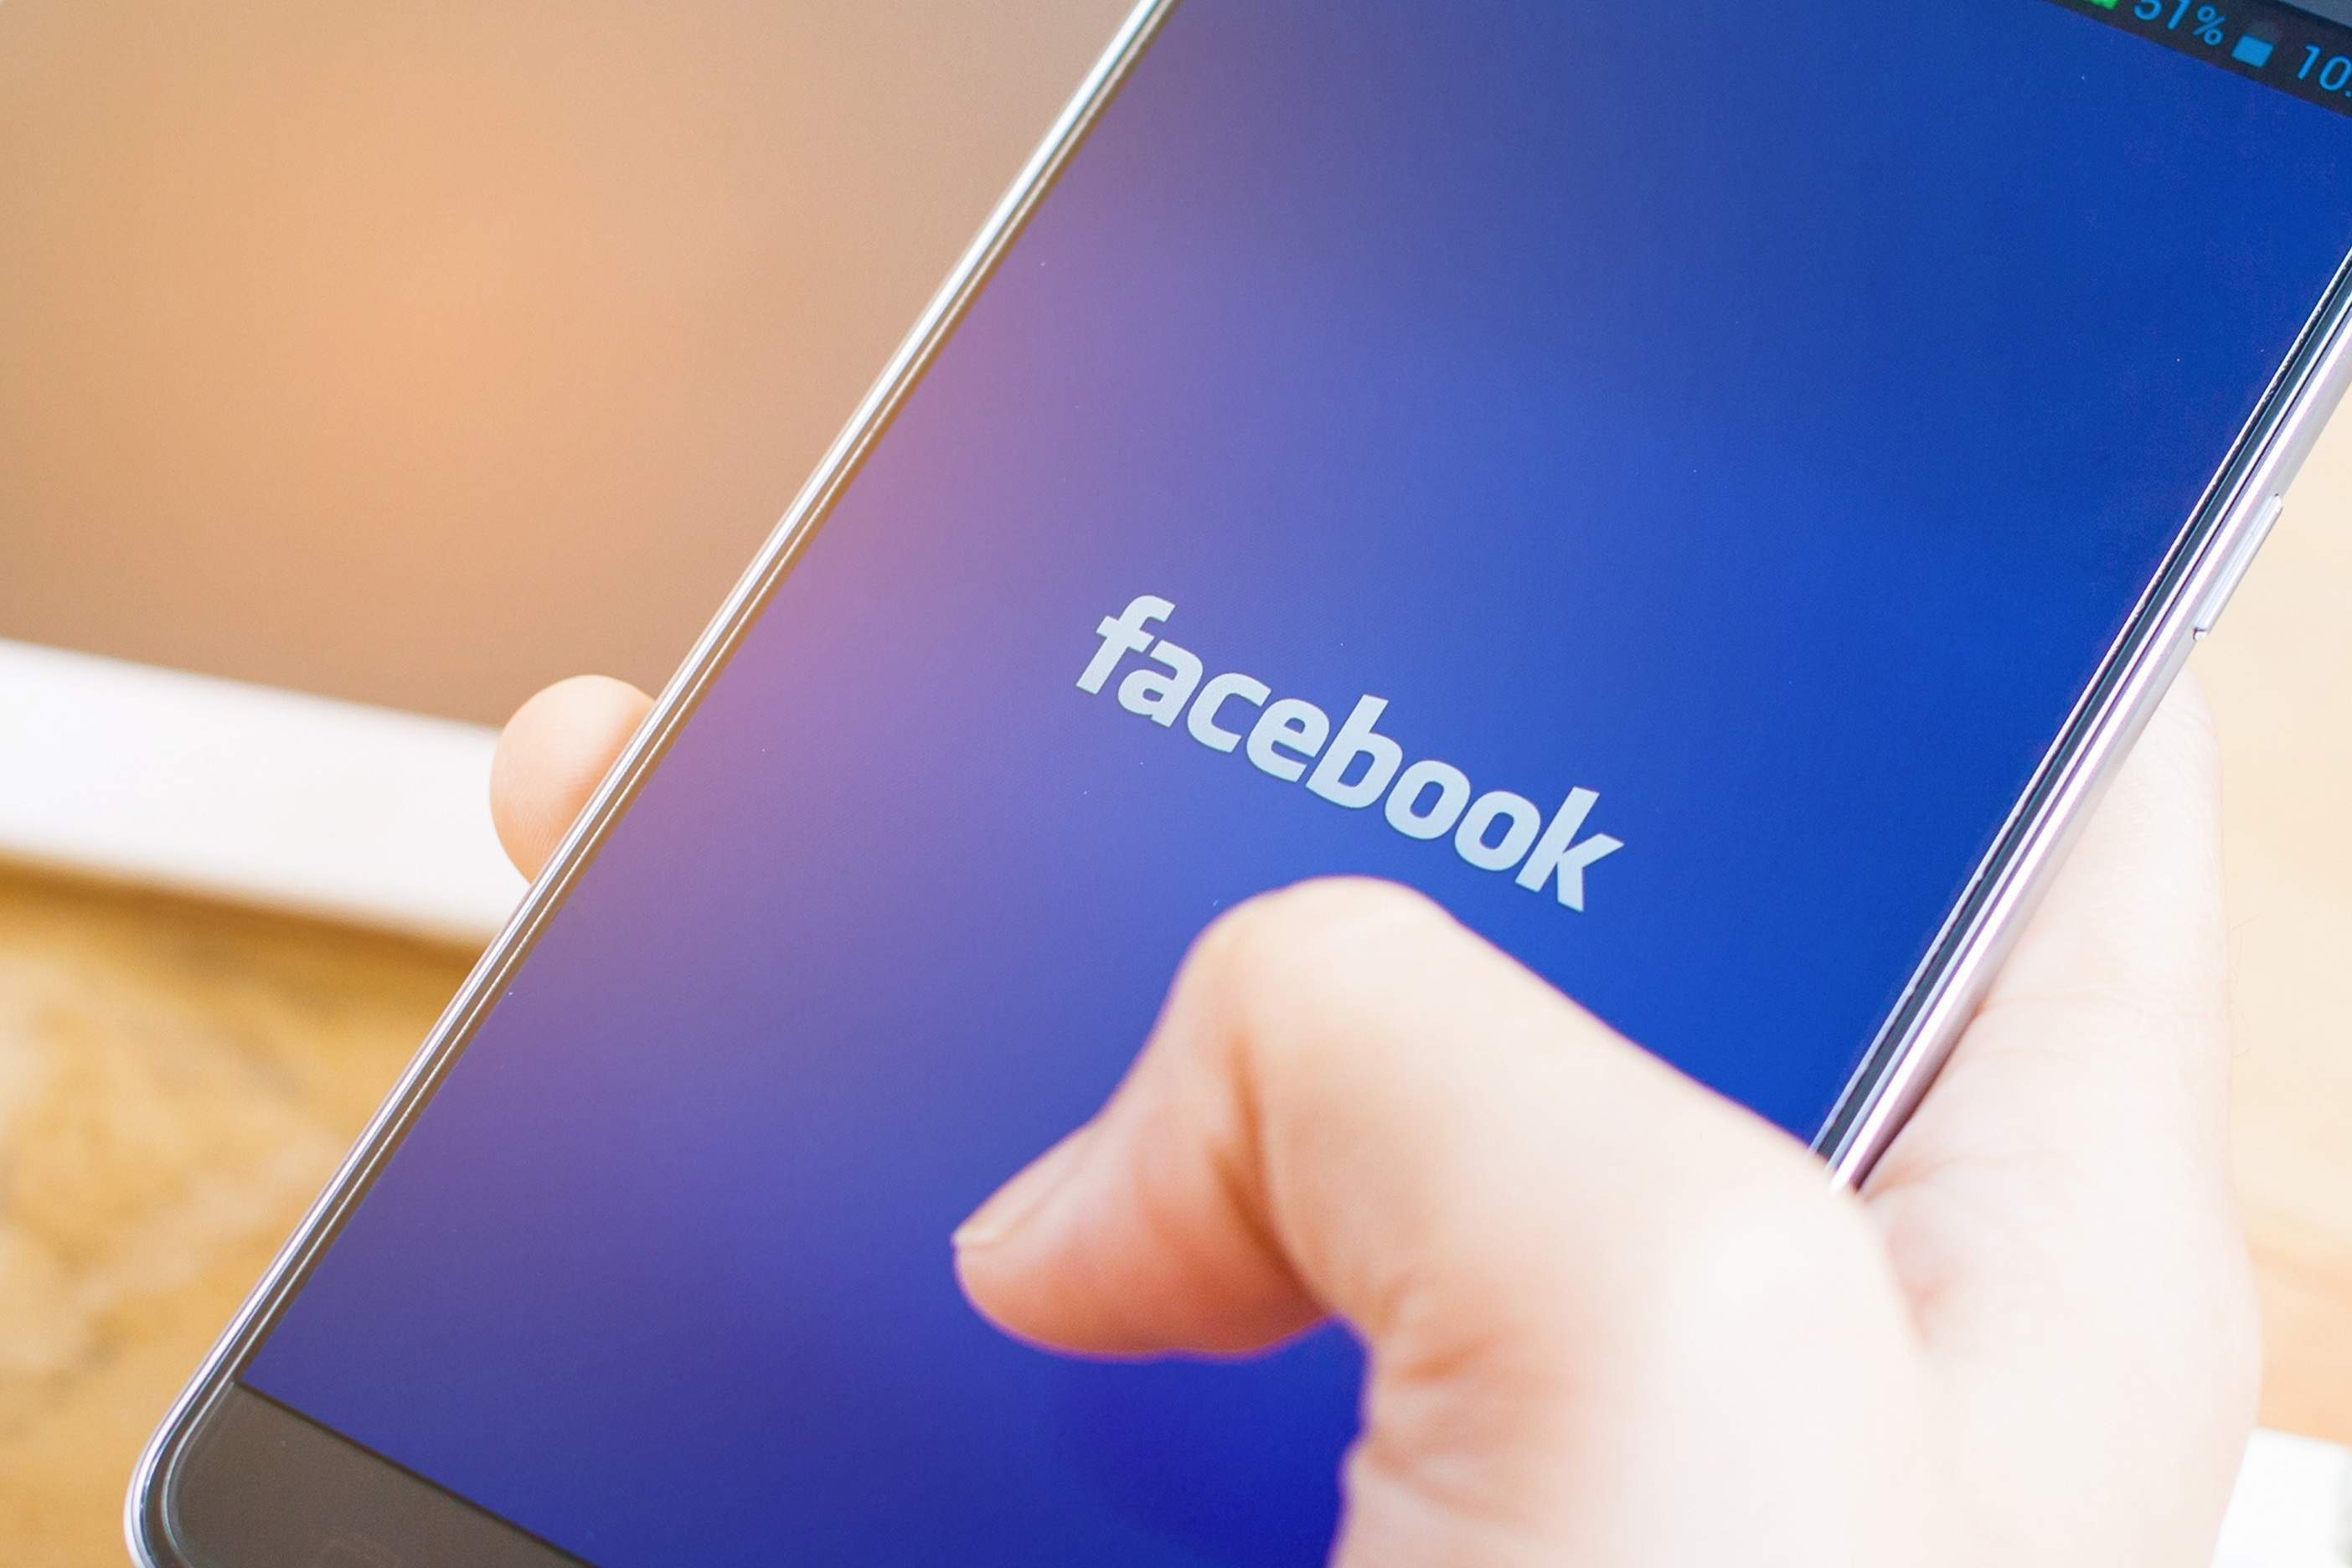 Facebook Watch is just another attempt to get you to spend more time on the platform